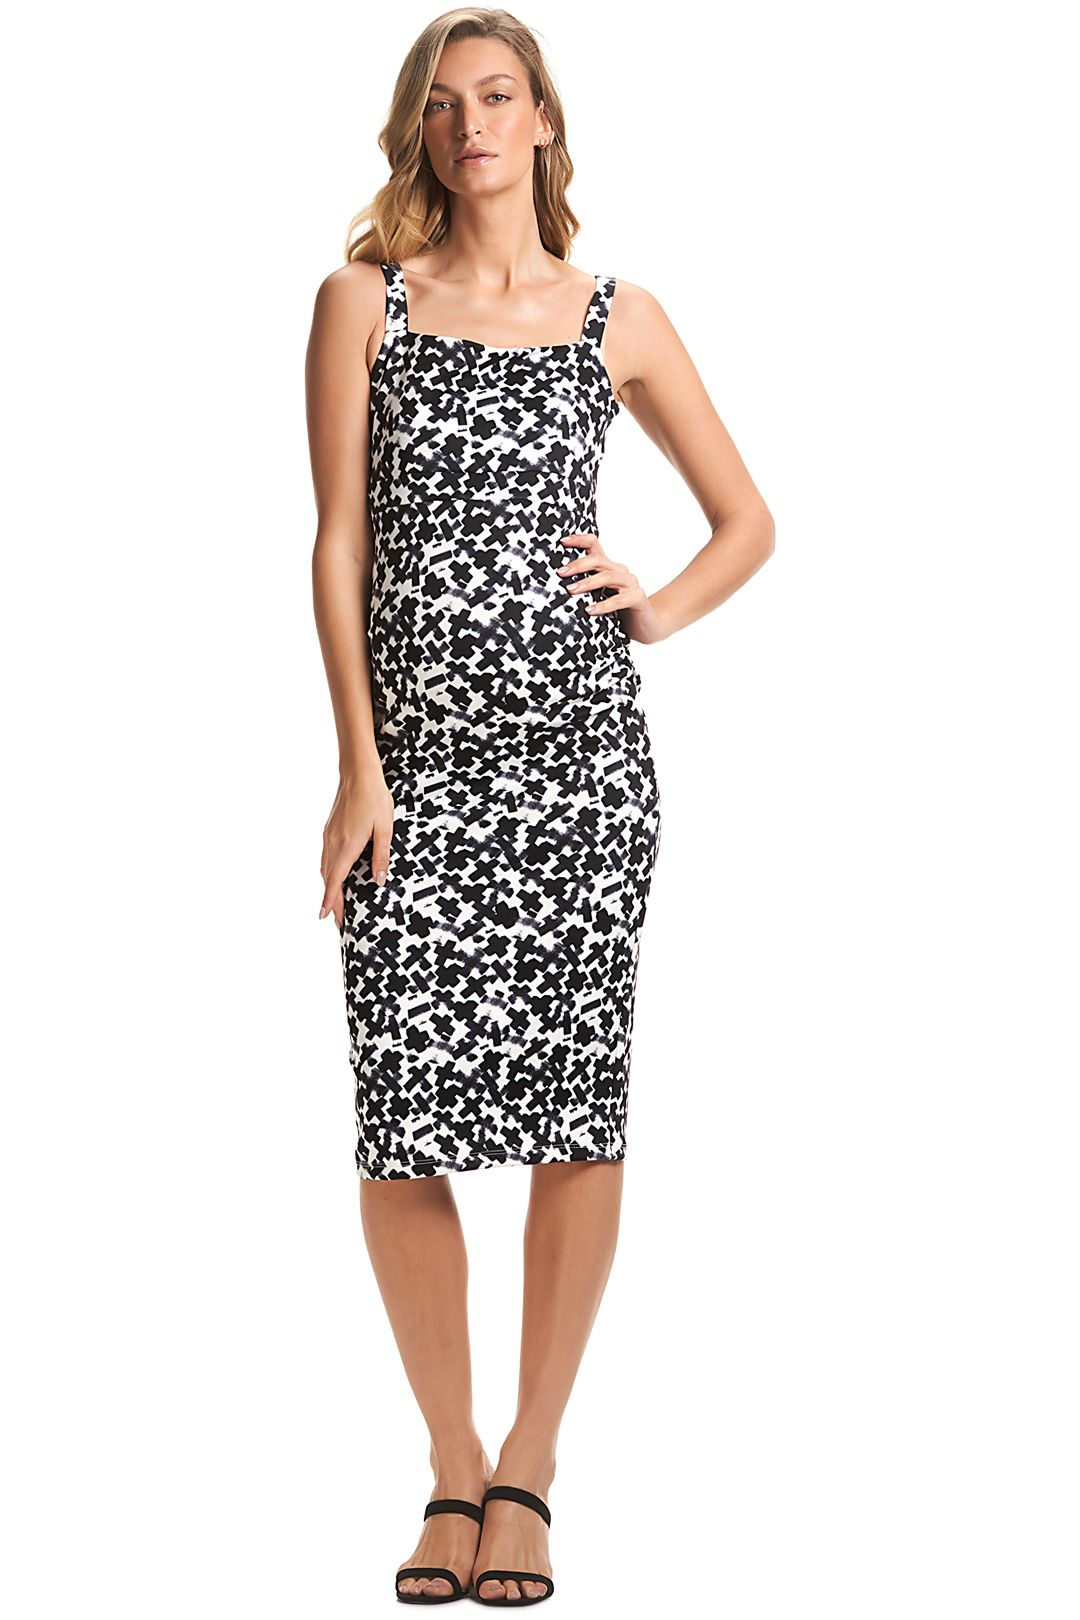 Soon-Maternity-Rosie-Dress-Black-White-Front